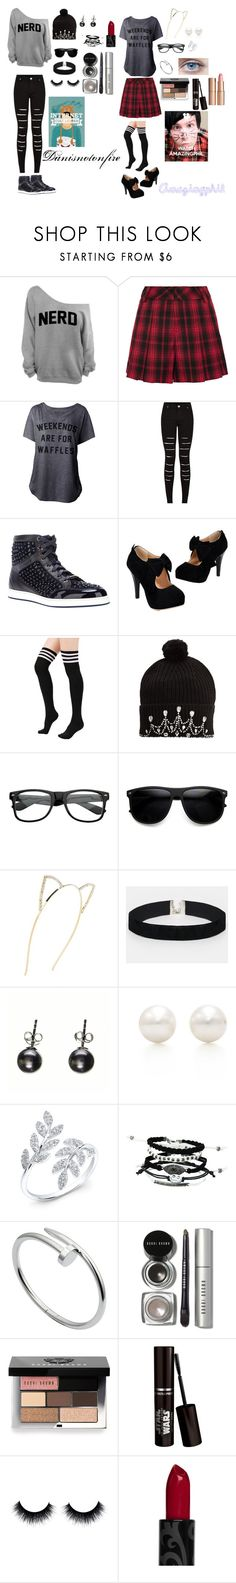 """""""Dan and Phil"""" by justdoitanddance ❤ liked on Polyvore featuring Alice + Olivia, Jimmy Choo, Markus Lupfer, Cara, ASOS, Tiffany & Co., Cartier, Bobbi Brown Cosmetics, Charlotte Tilbury and Sykes"""